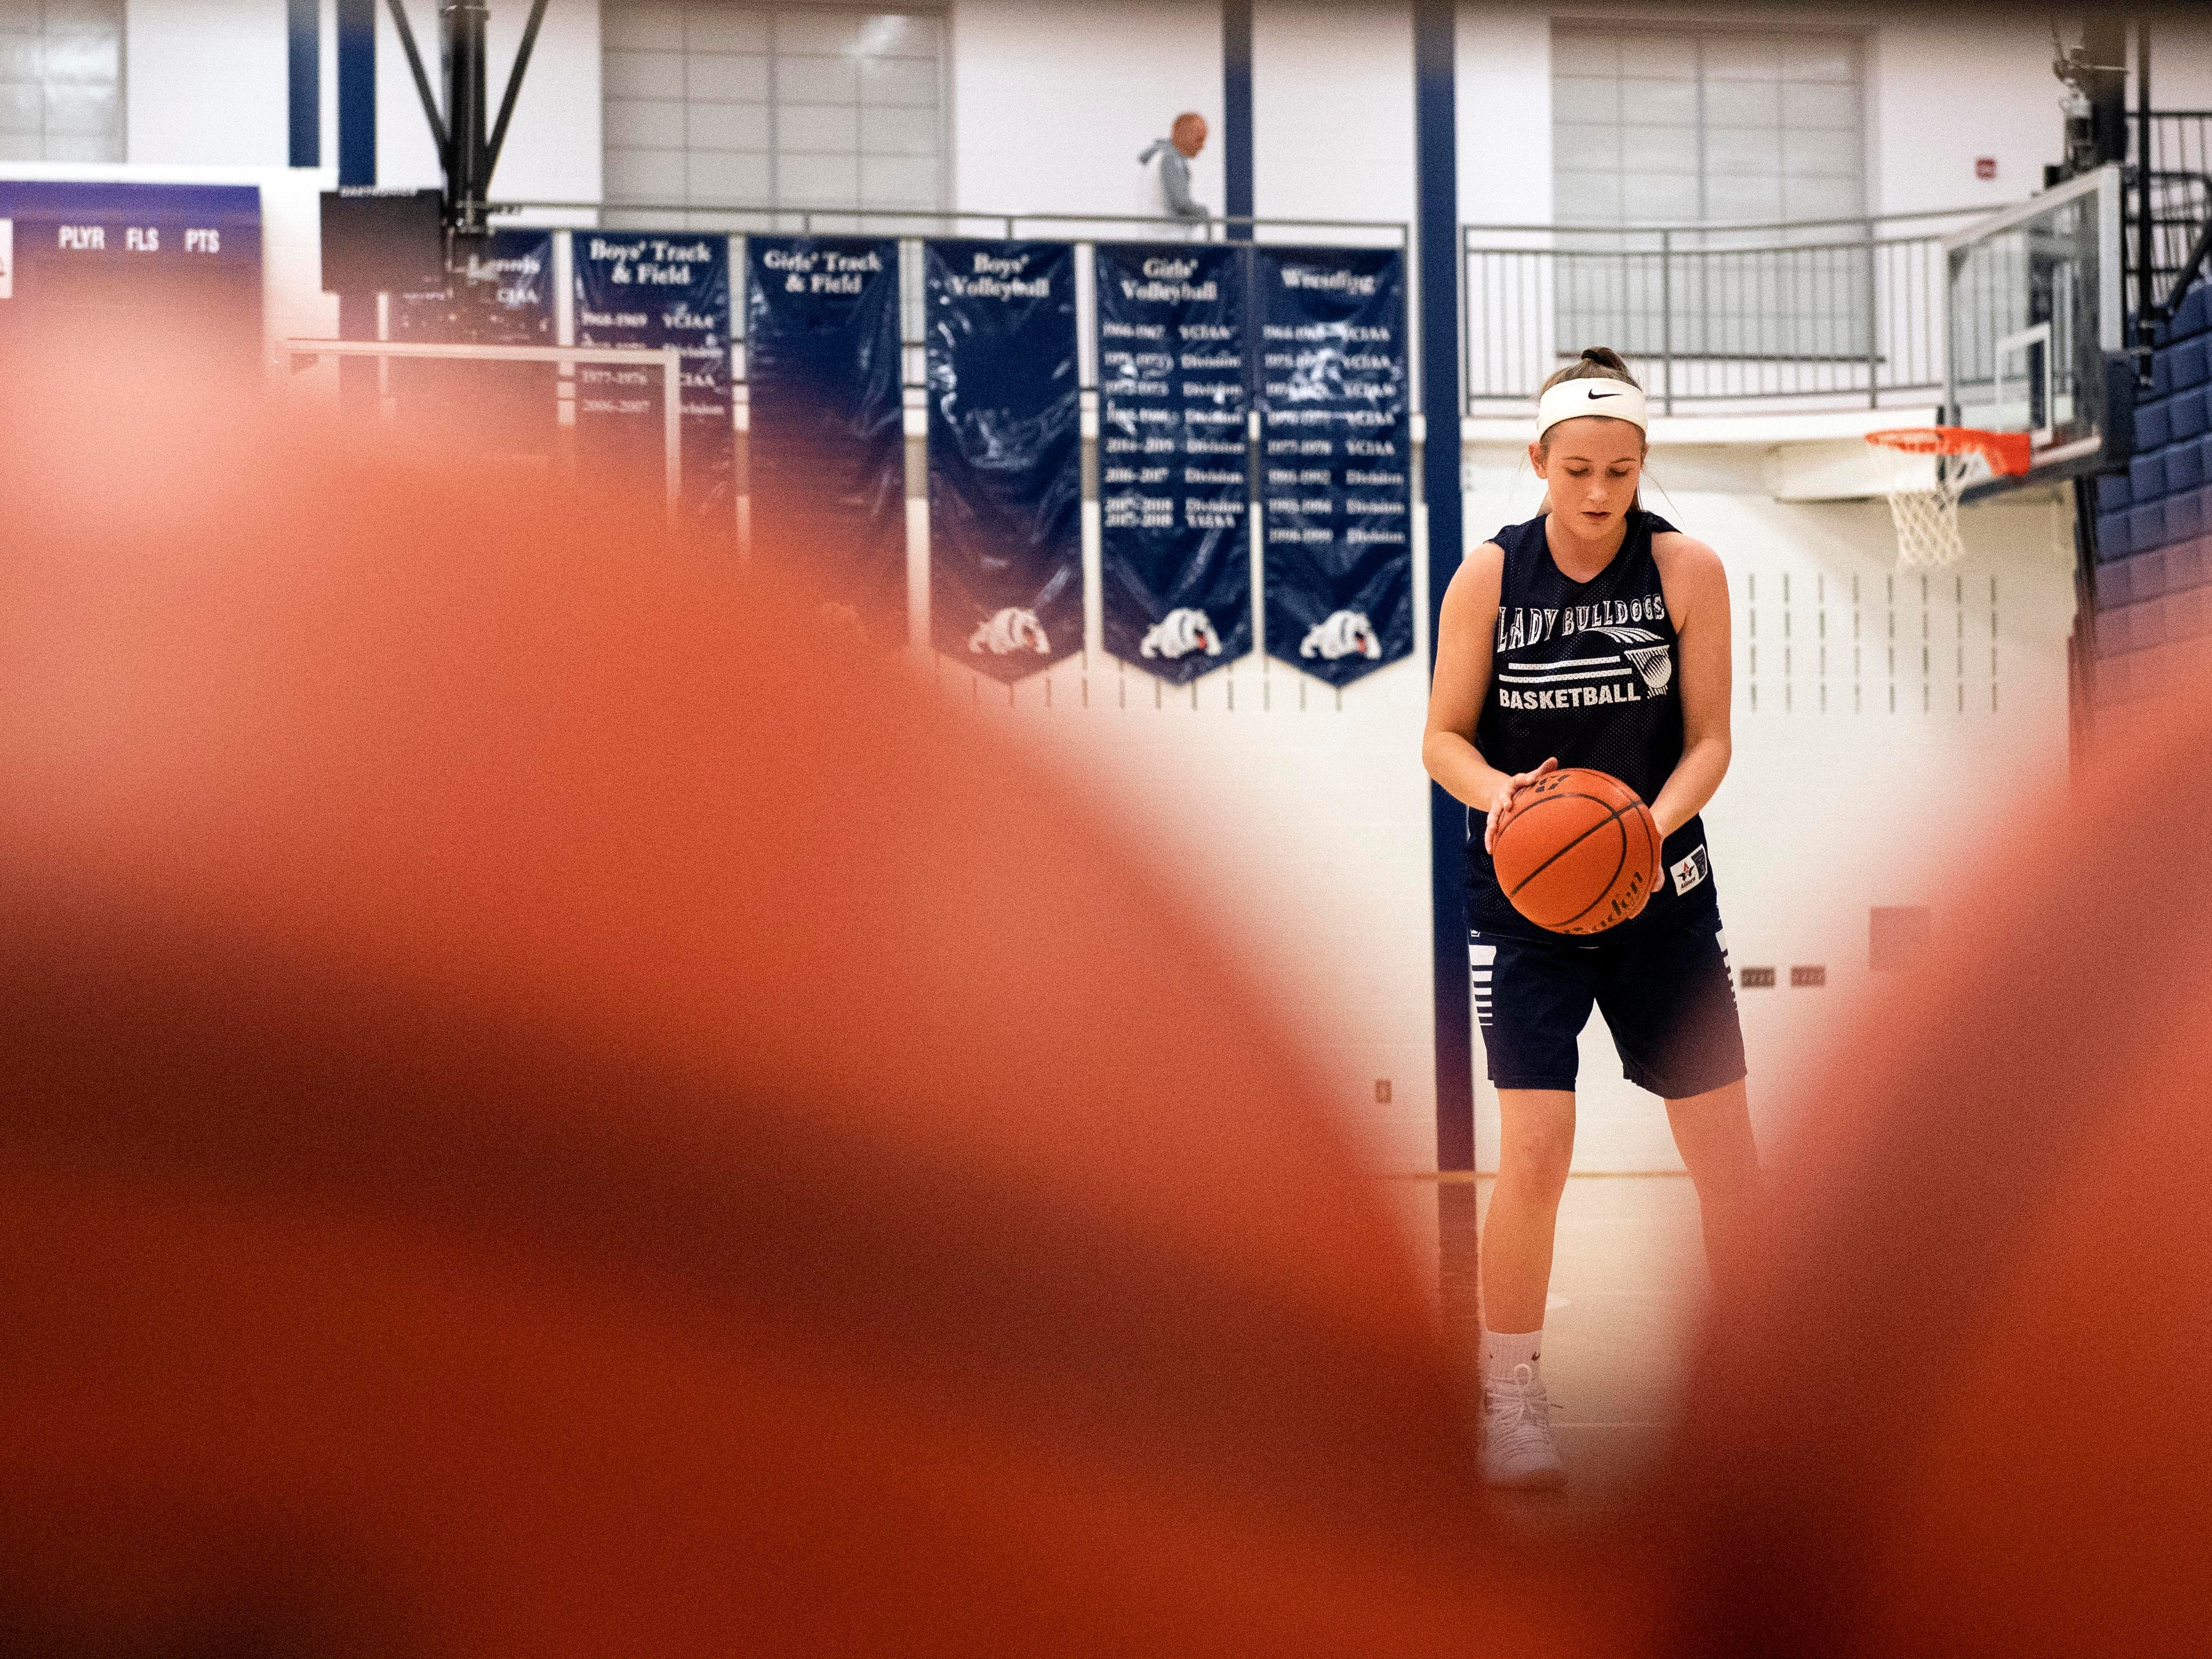 West York girls' basketball work on free throws during the first official day of winter sports practice on Friday, November 16, 2018.